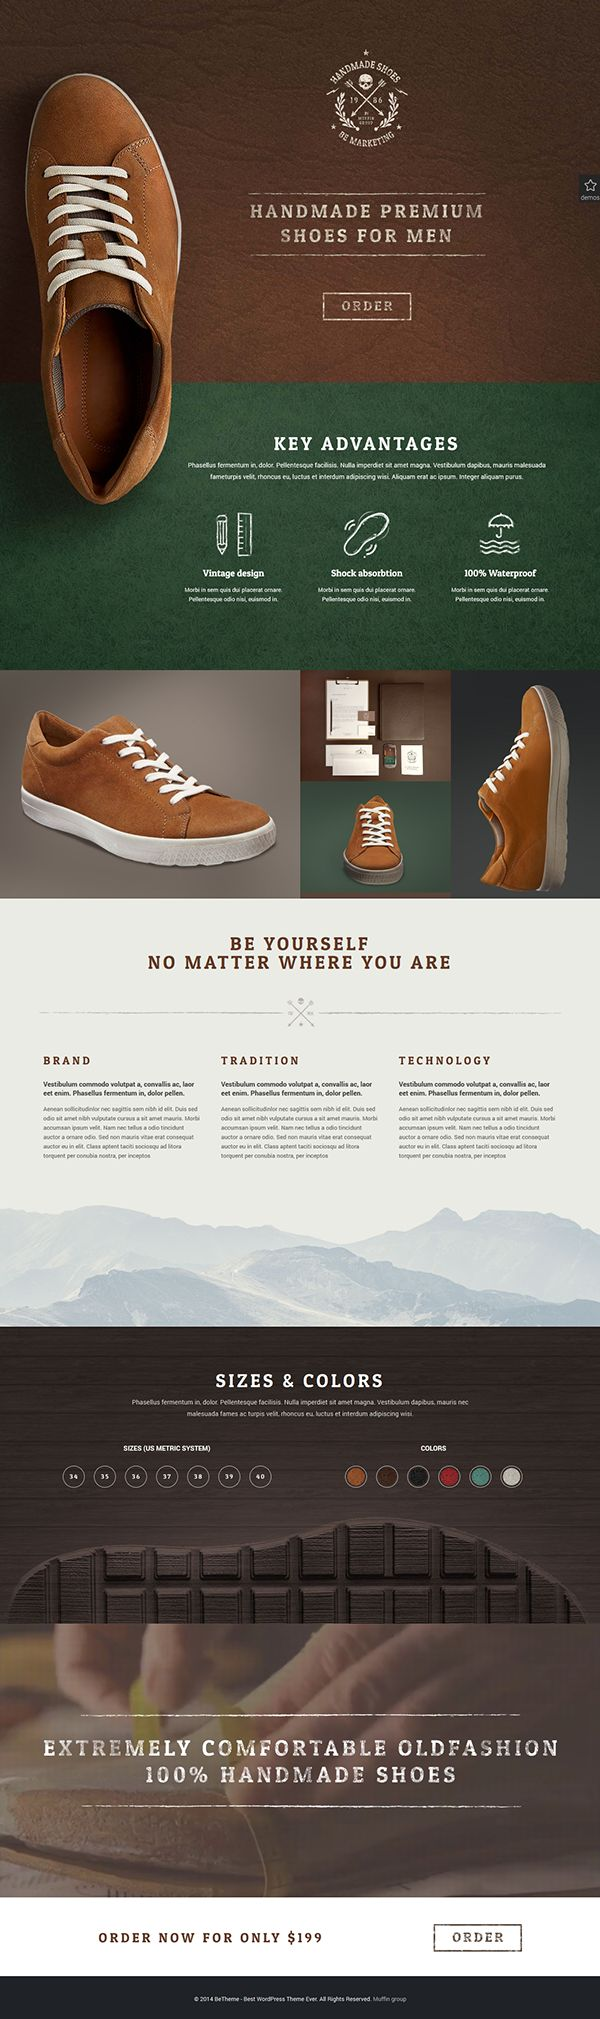 BeTheme - Handmade Shoes Example on Behance